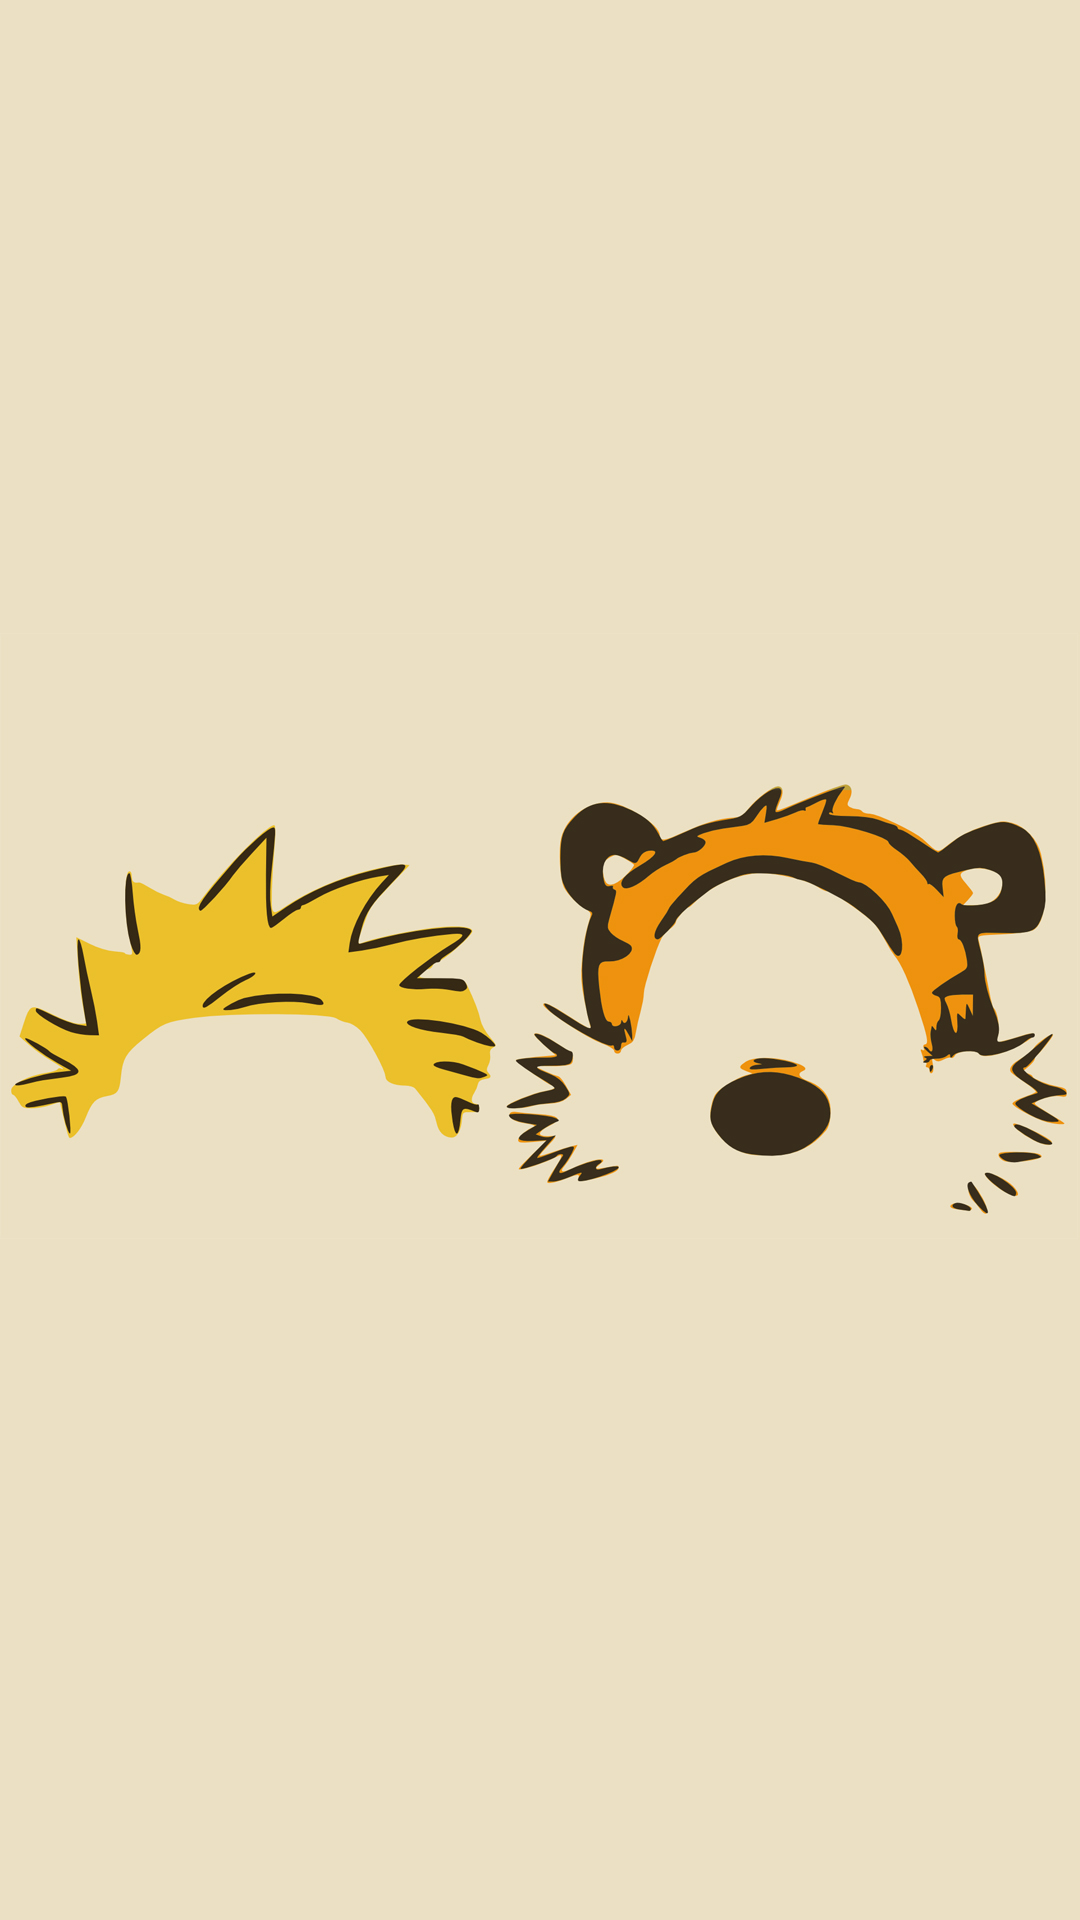 Hd Wallpapers 1080p Widescreen Quotes Calvin And Hobbes Iphone Wallpaper For Desktop